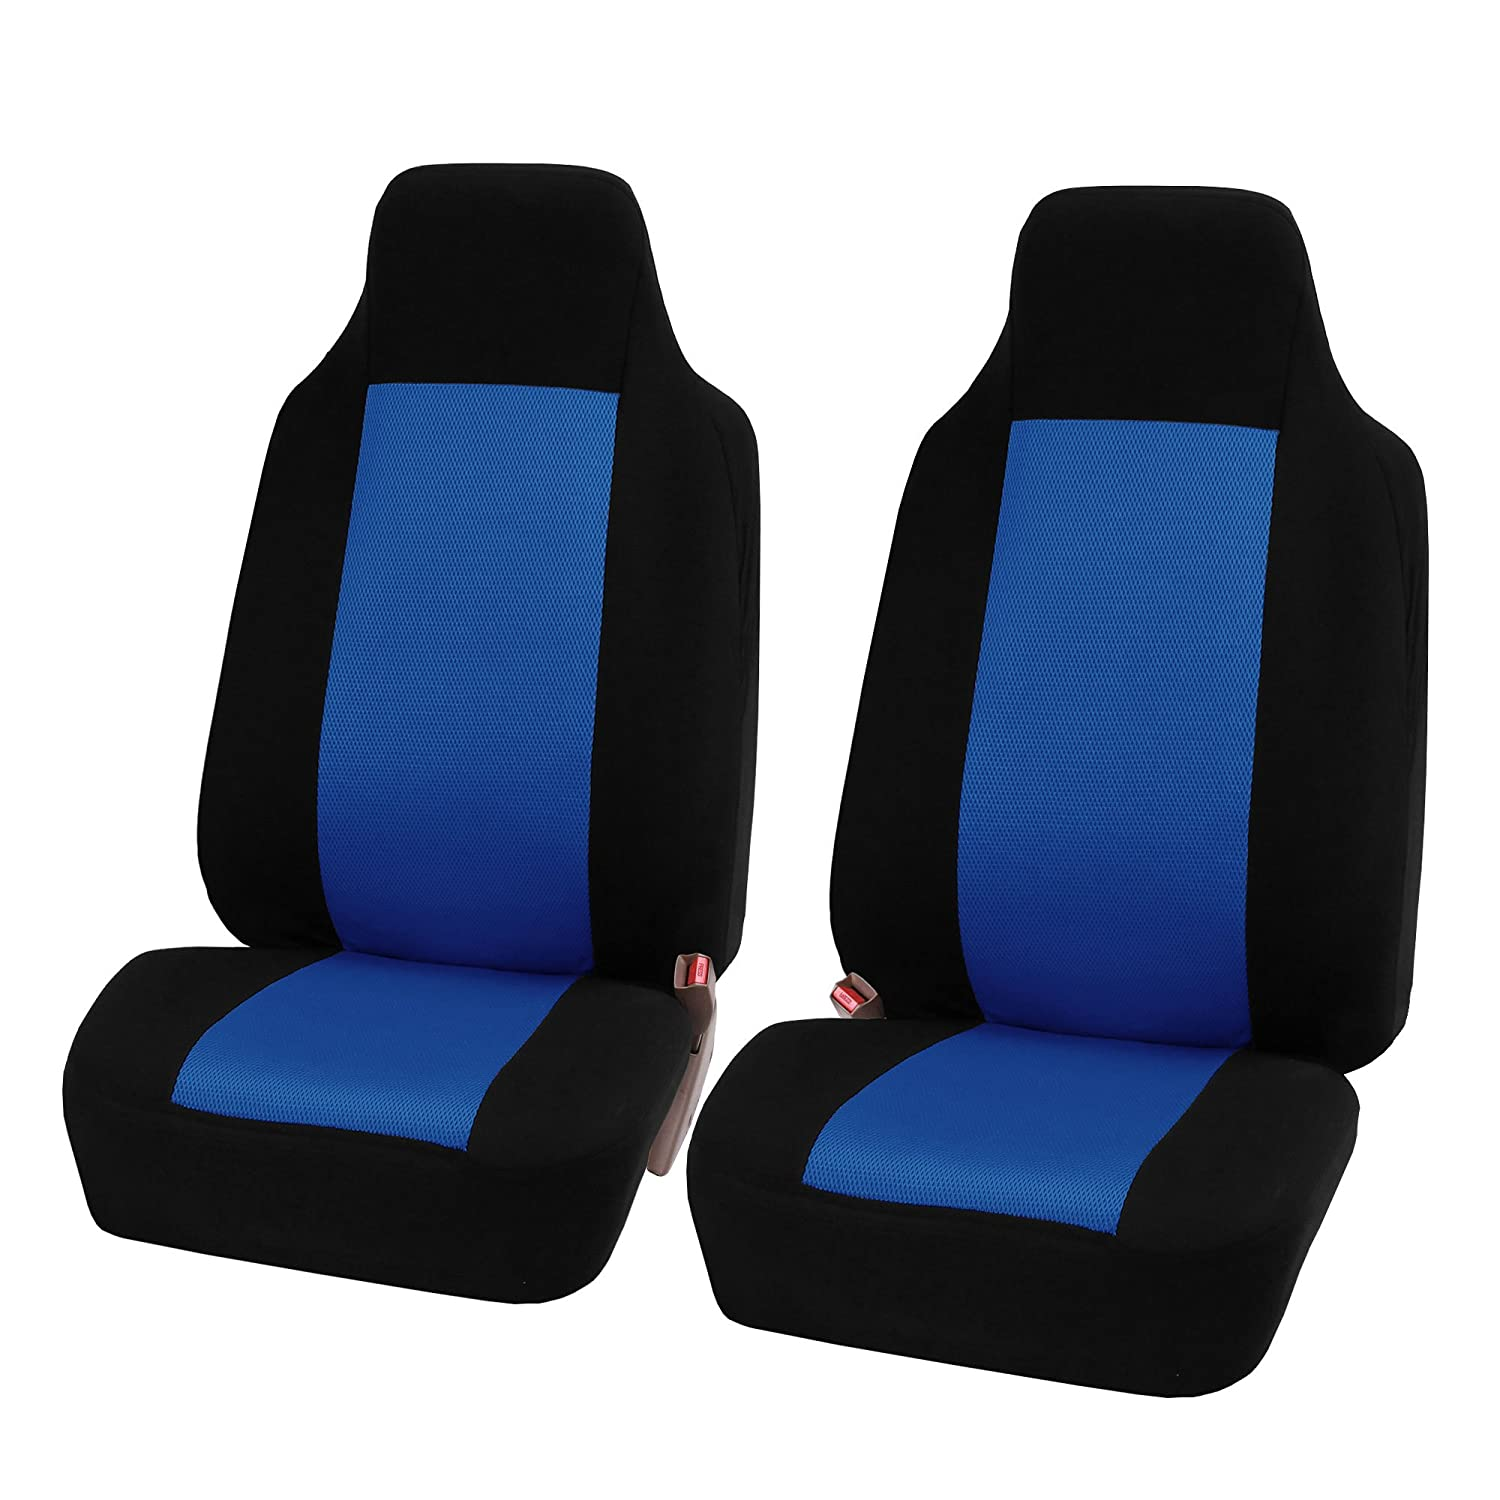 Steering Wheel Cover /& Seat Belt Pads Solid Black Color or Van Truck Fit Most Car Suv FH GROUP PU021115 Synthetic Leather Full Set Auto Seat Covers w